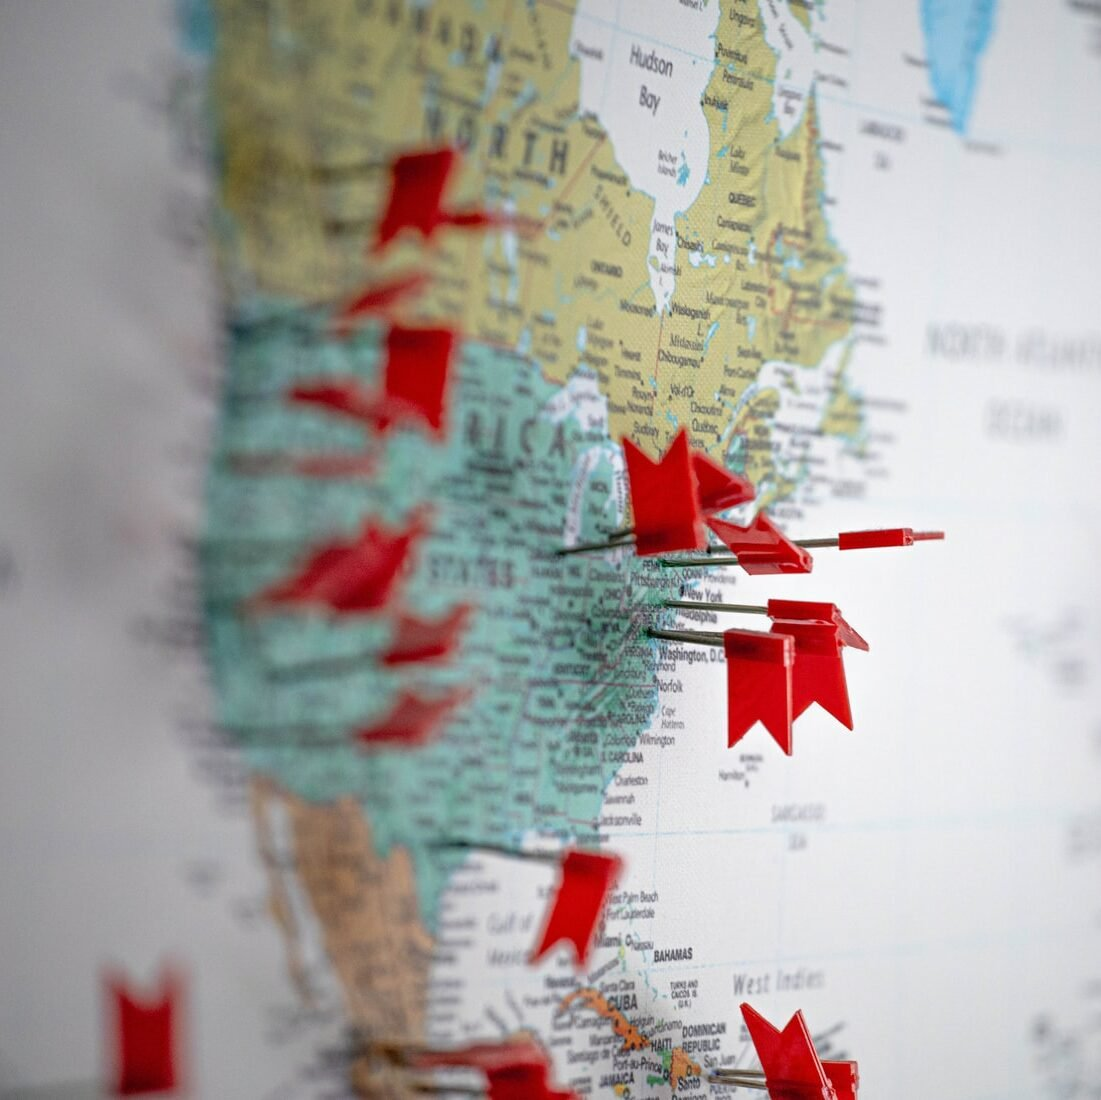 US and Canada map with pins indicating to open new dispensary